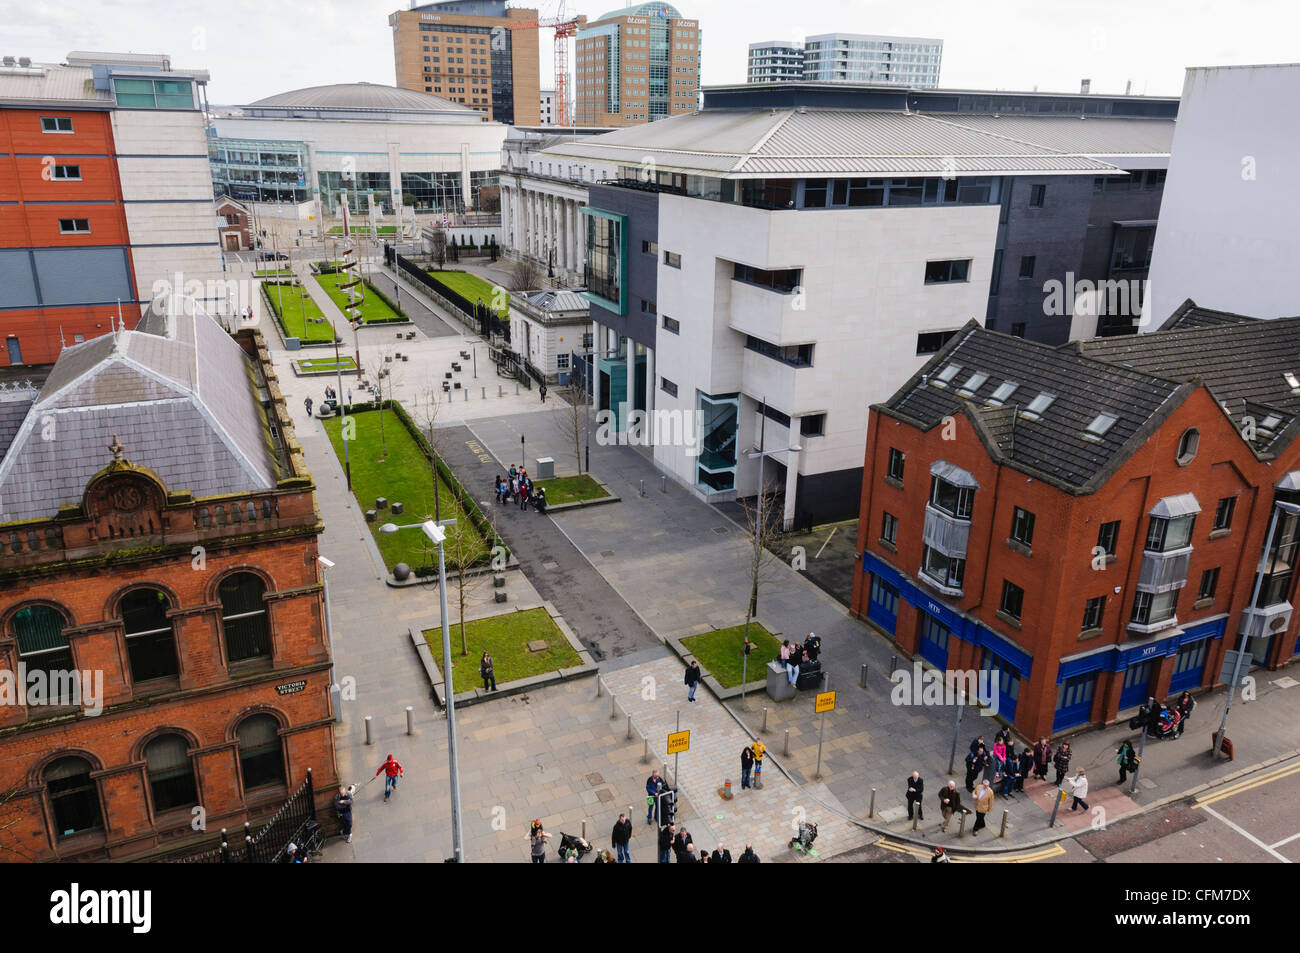 Belfast Law Courts area at Laganside - Stock Image